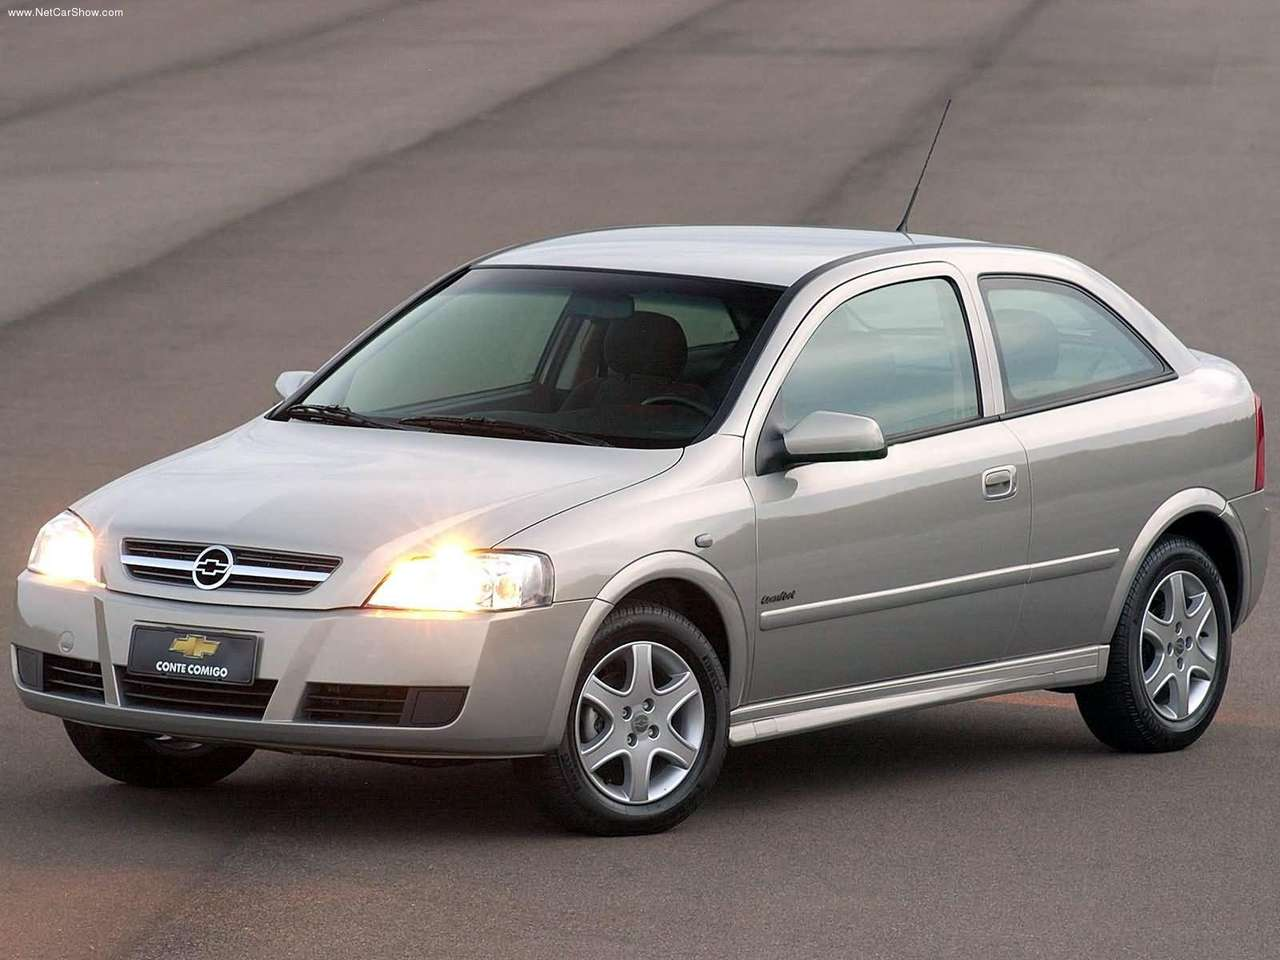 2005 Chevrolet Astra 2 0 Flexpower Comfort